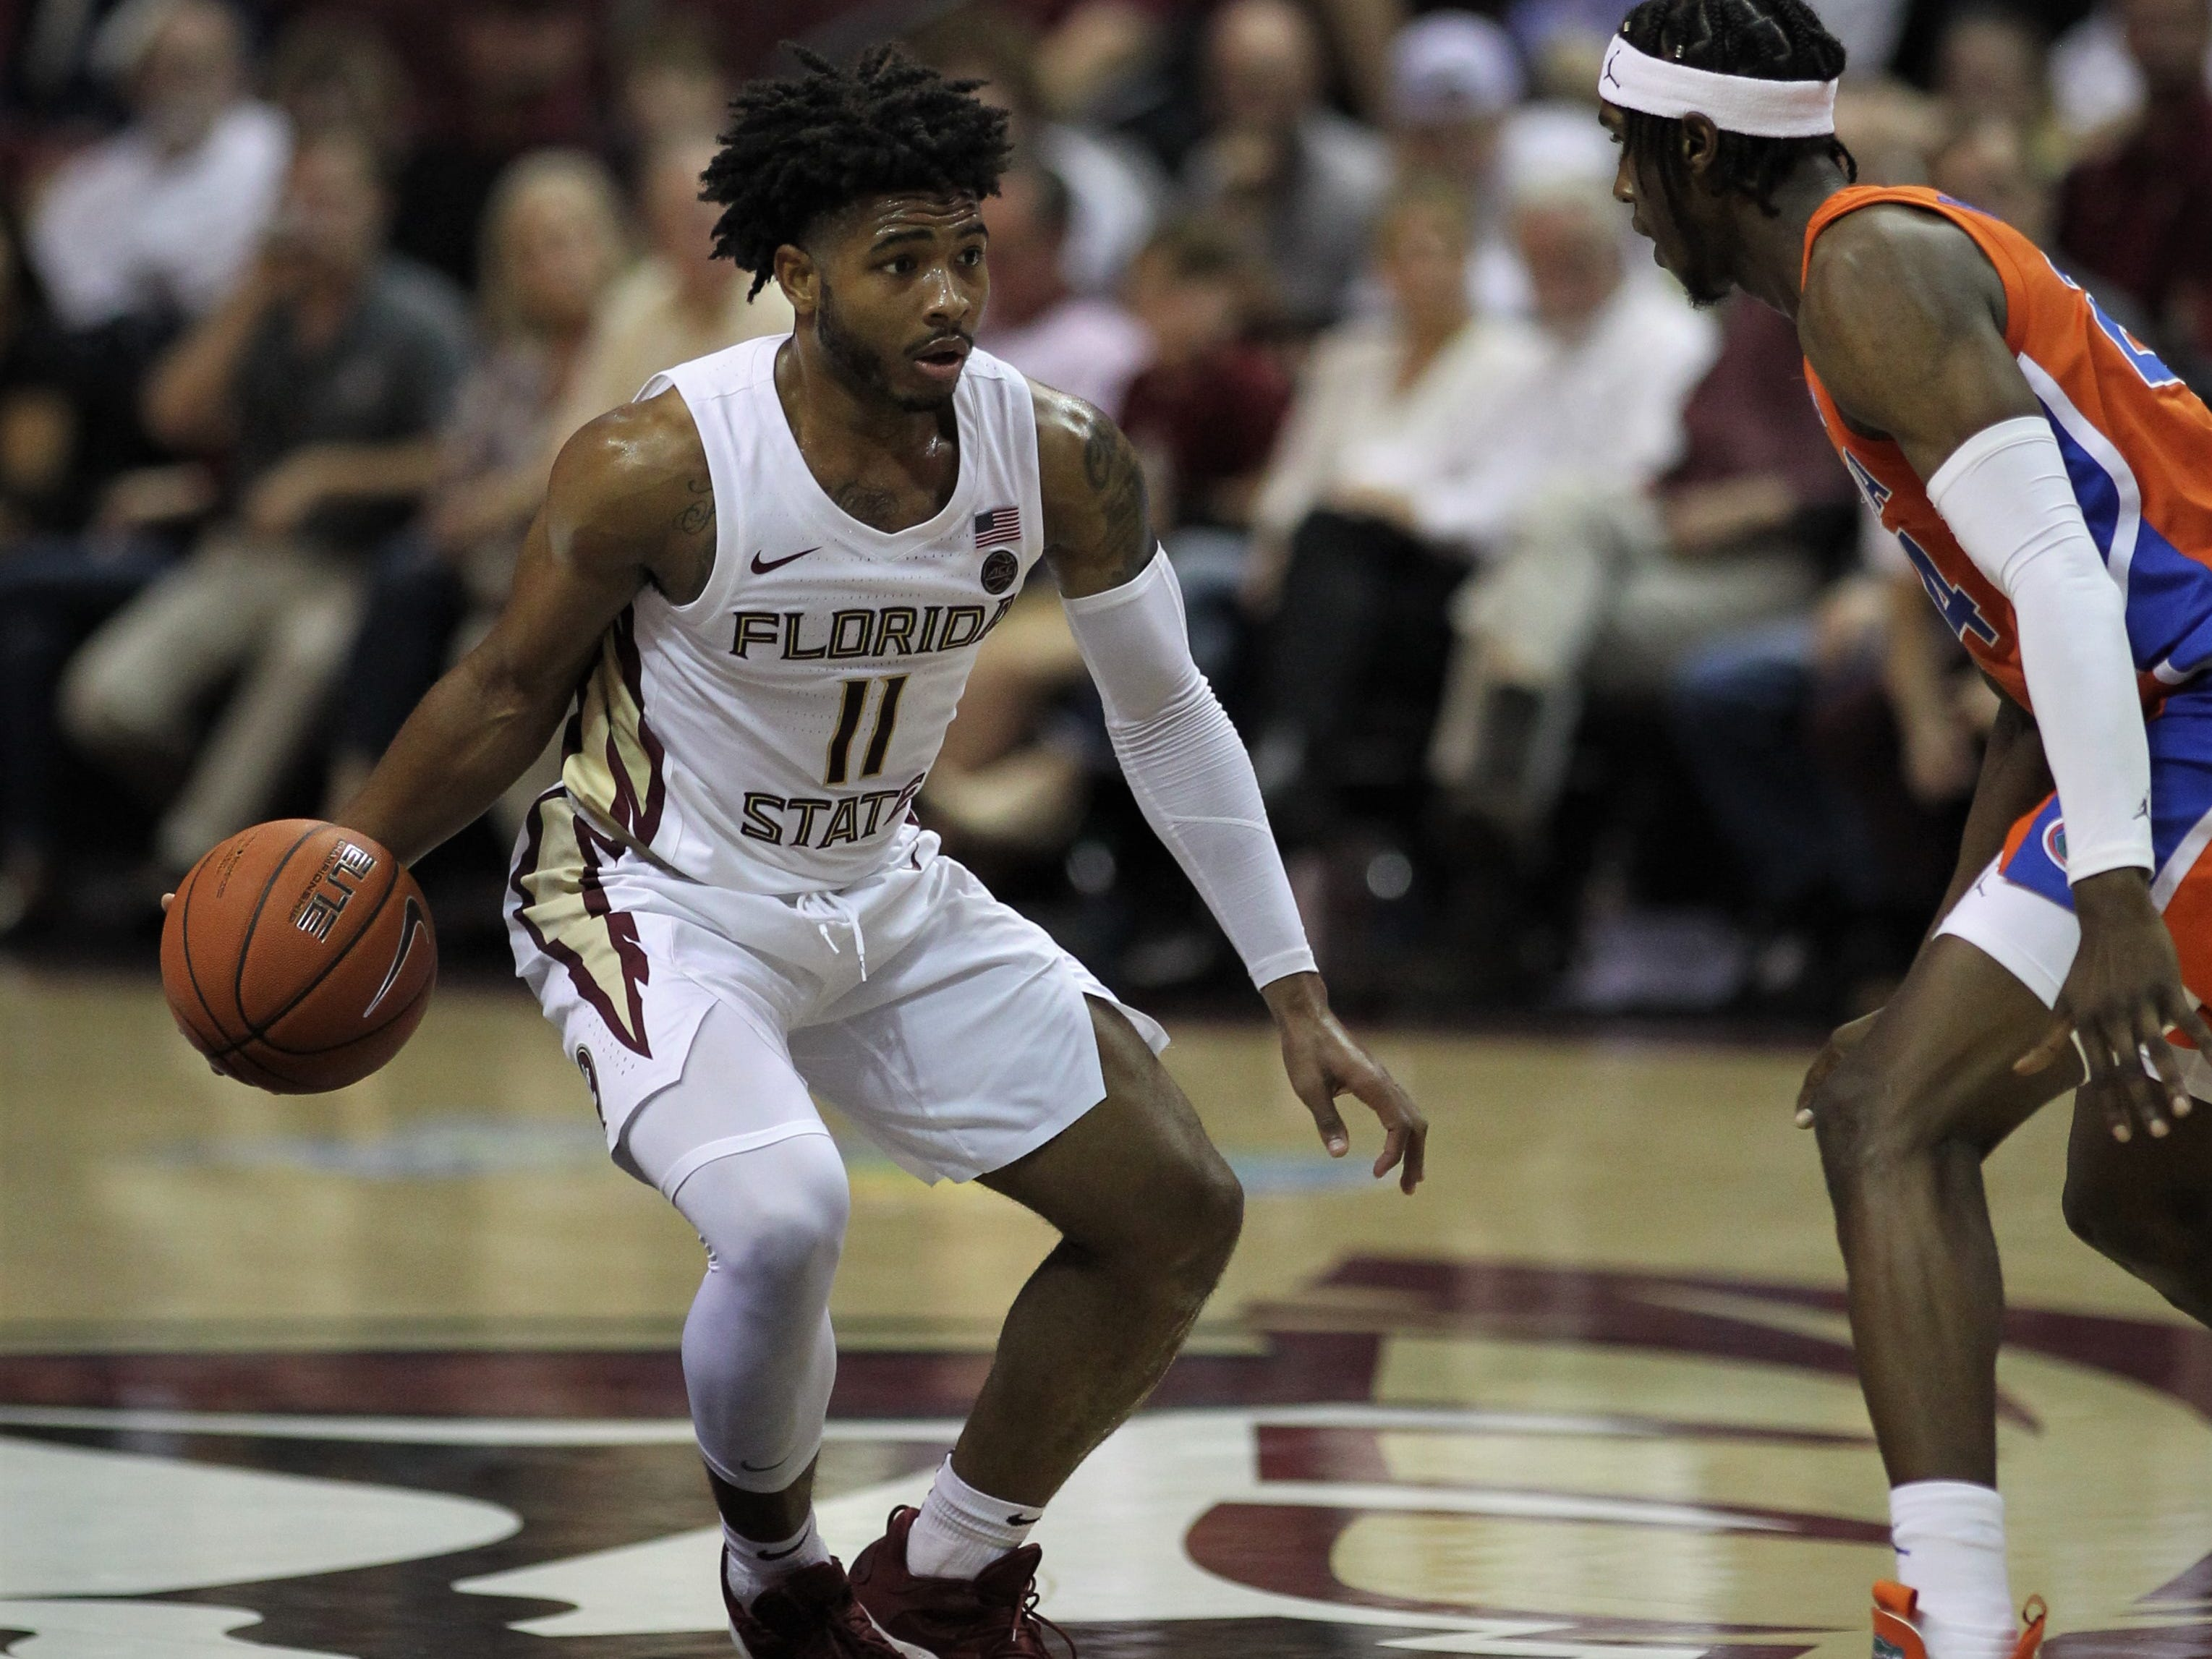 Florida State's David Nichols makes a dribble move on Florida's Daundrae Ballard during the Sunshine Showdown game Tuesday at the Tucker Civic Center.